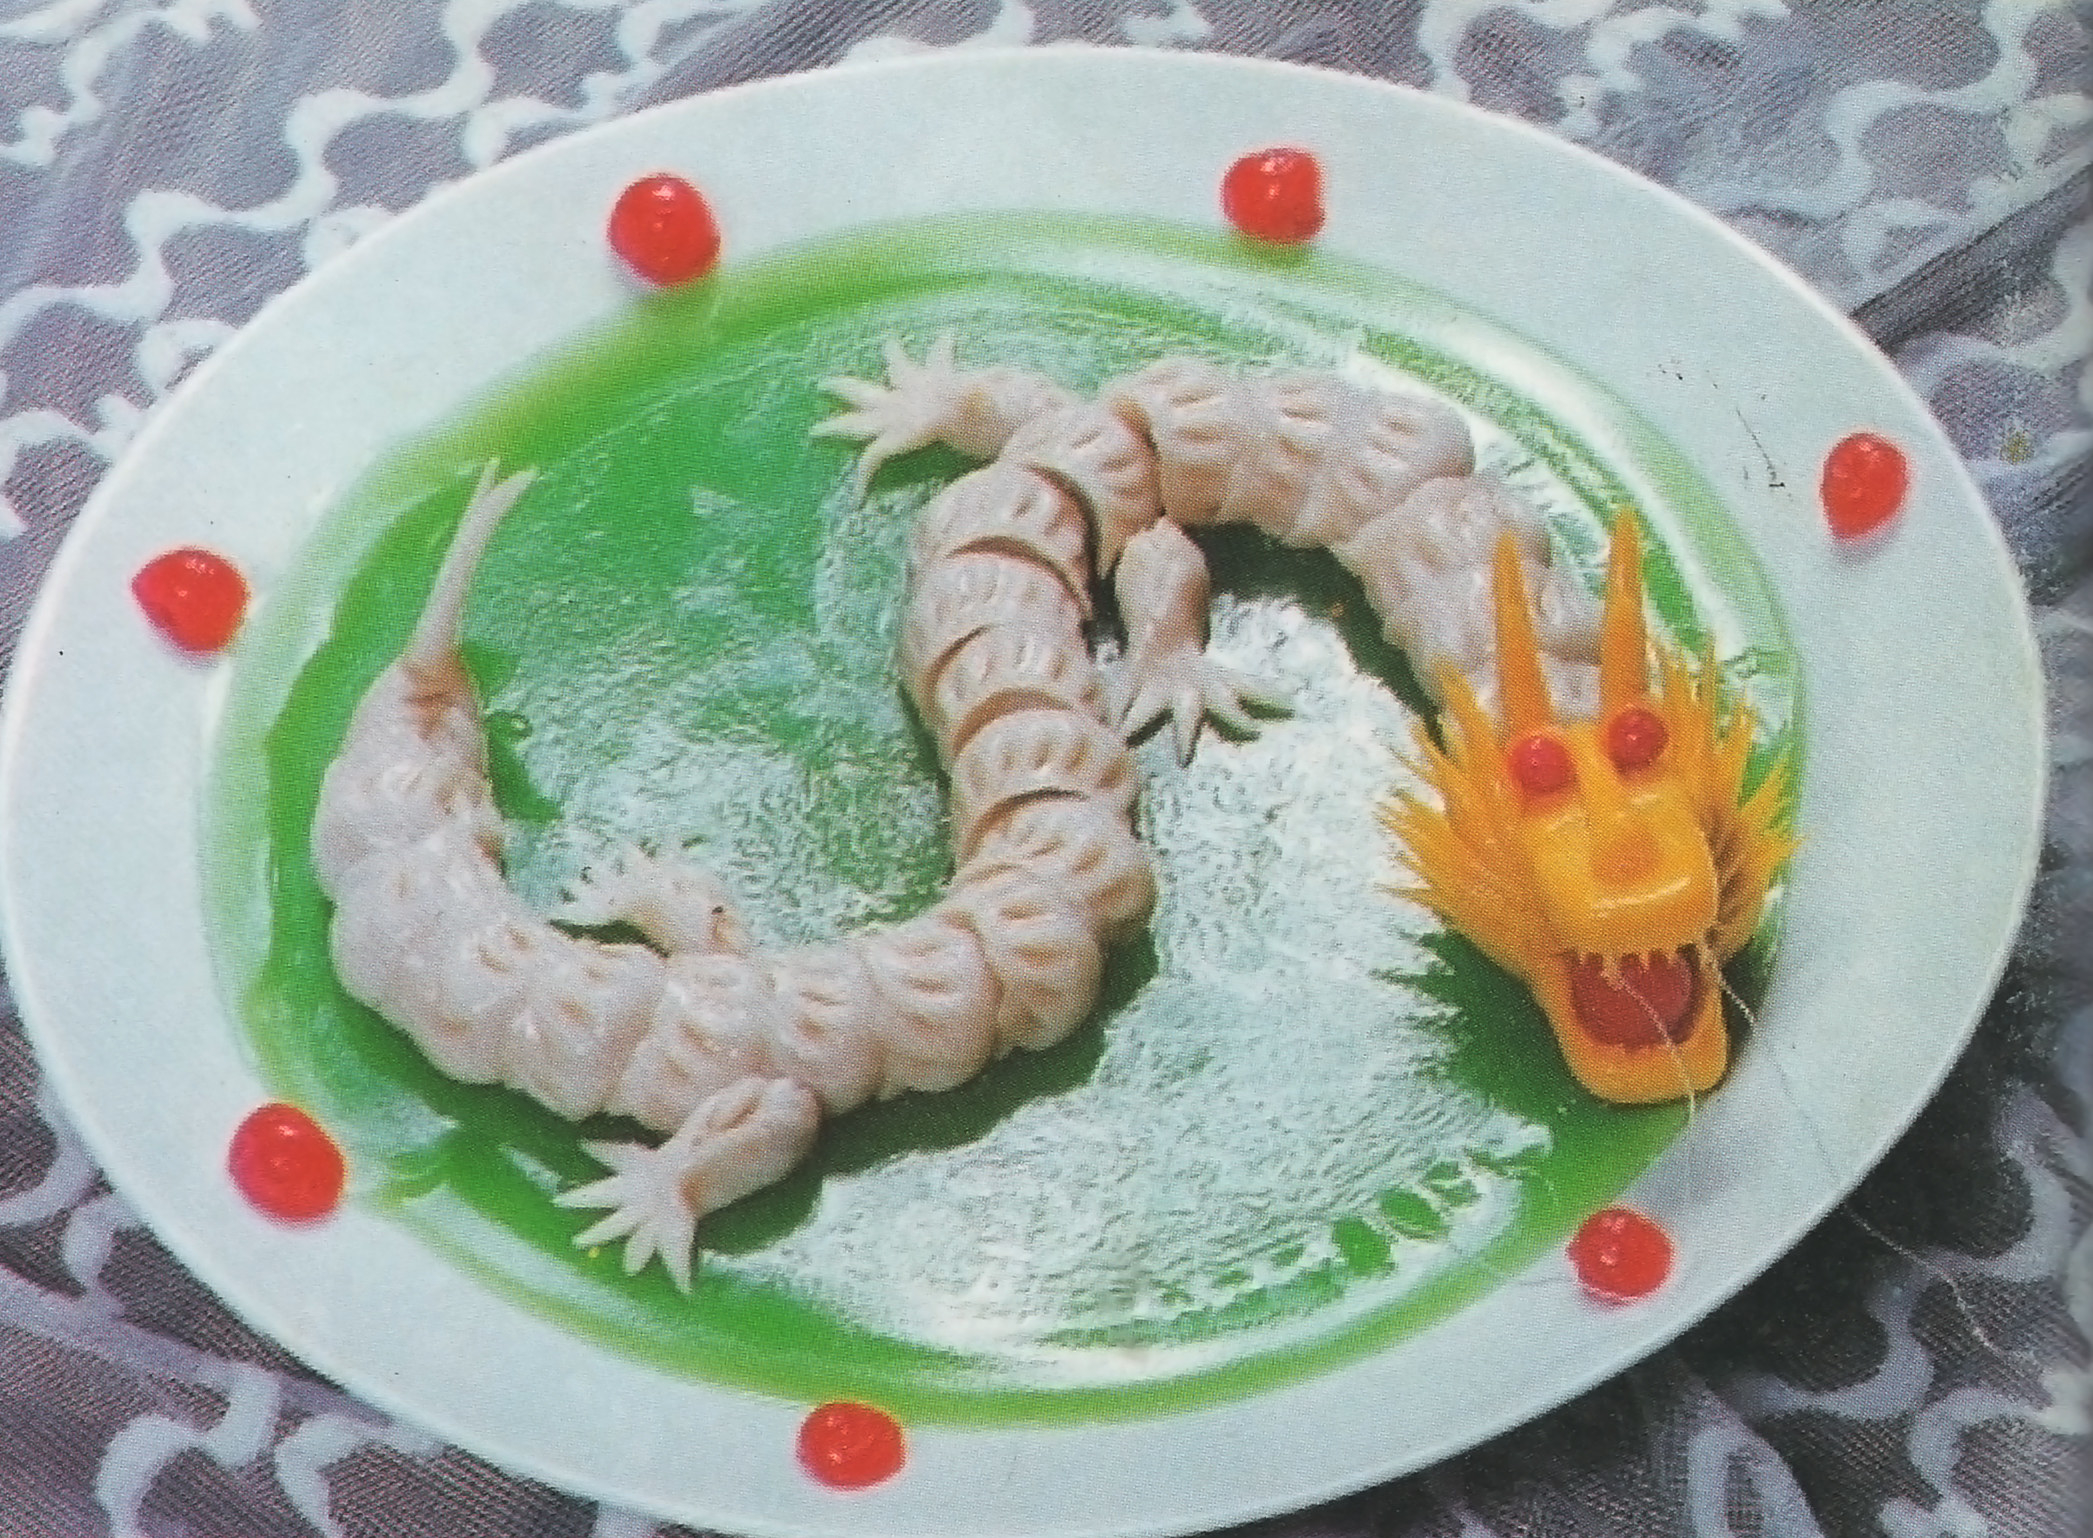 A dragon made of dumplings and fruit